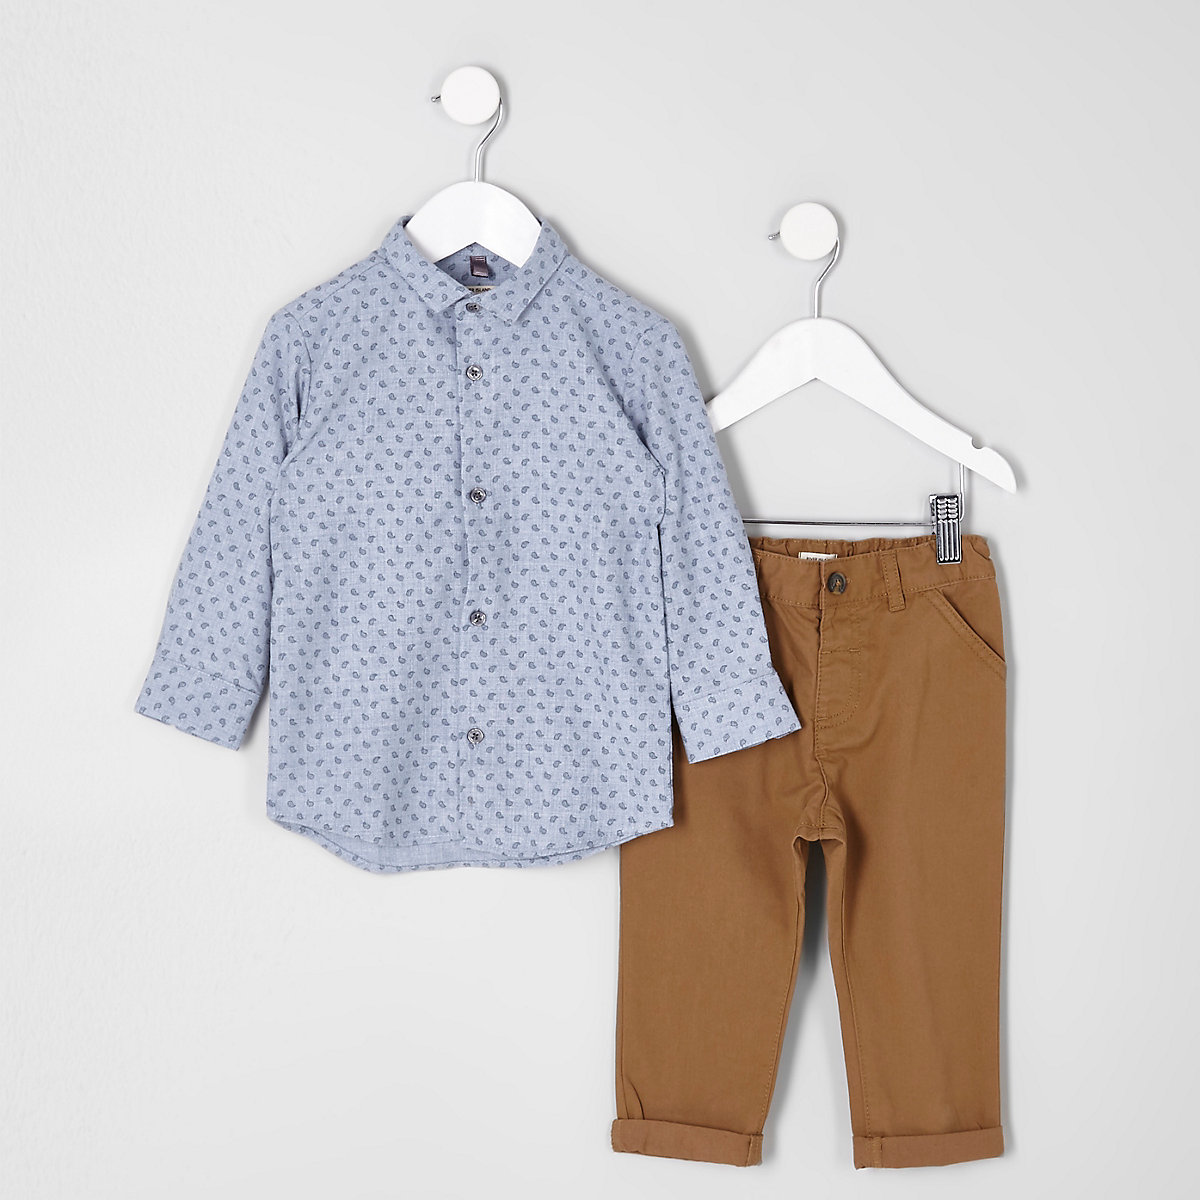 Mini boys paisley shirt and chinos outfit